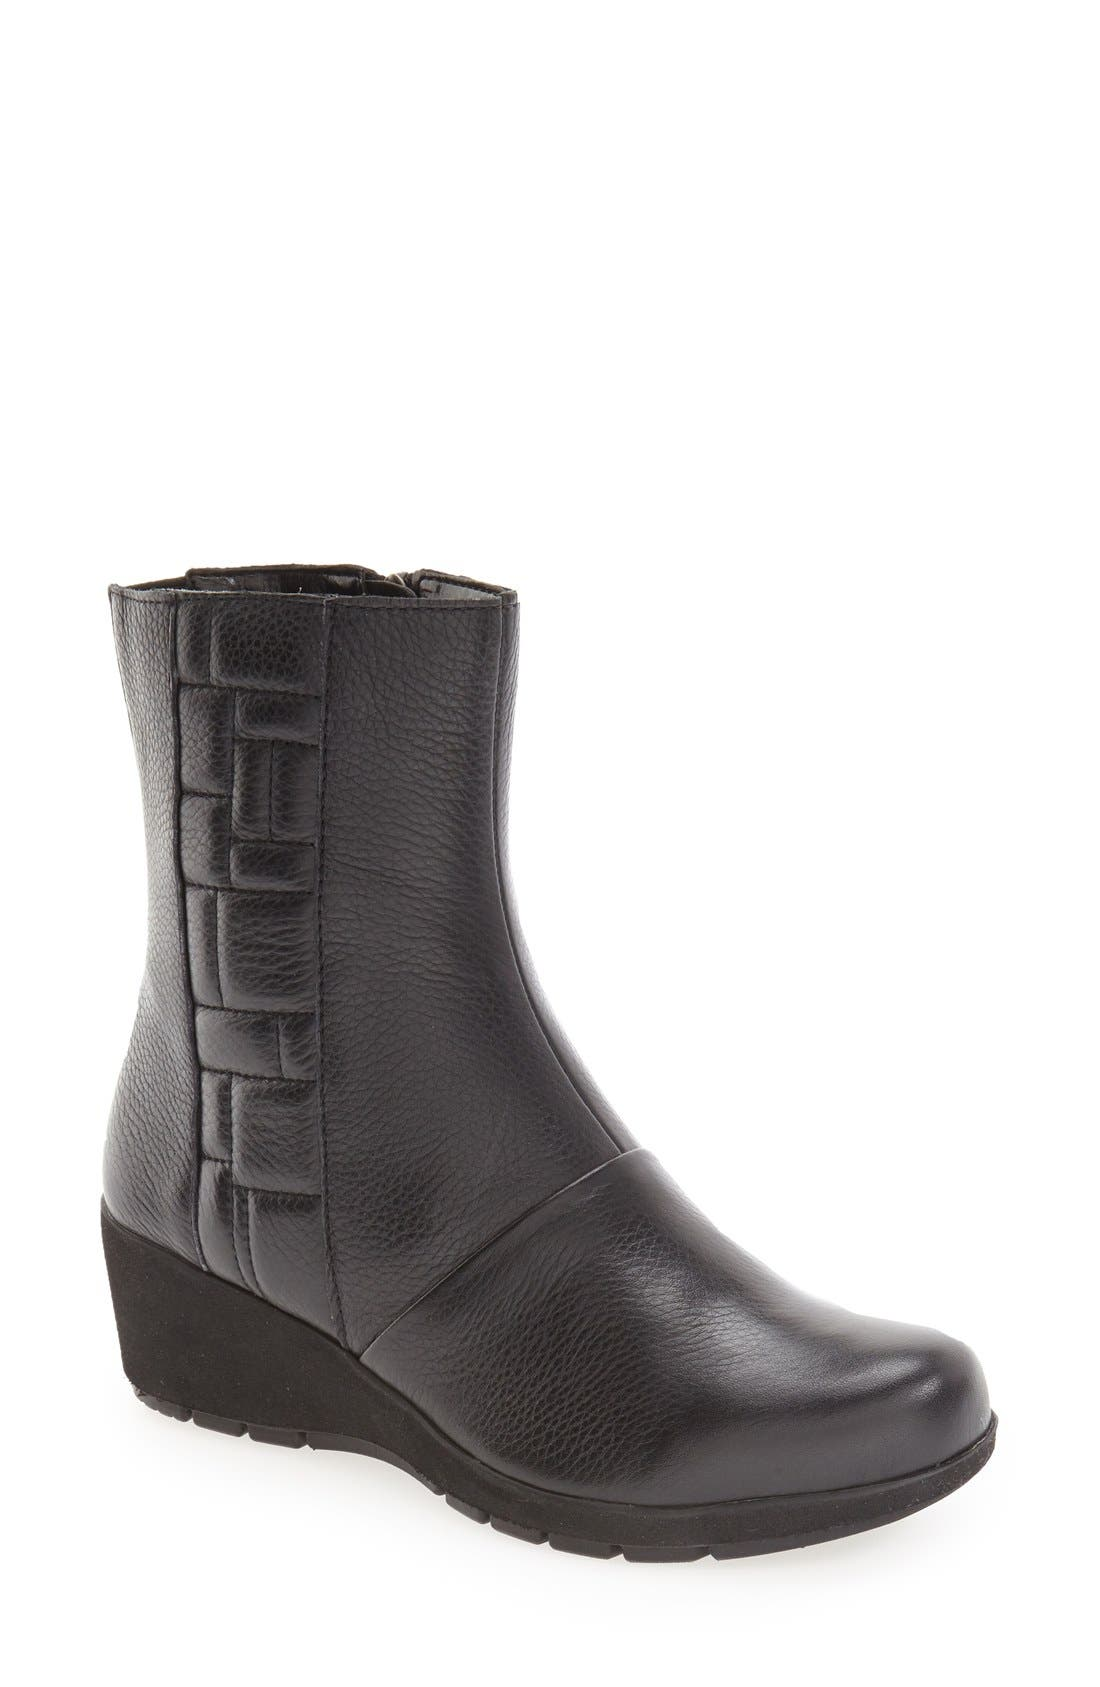 'Jane' Wedge Bootie,                             Main thumbnail 1, color,                             Black Leather